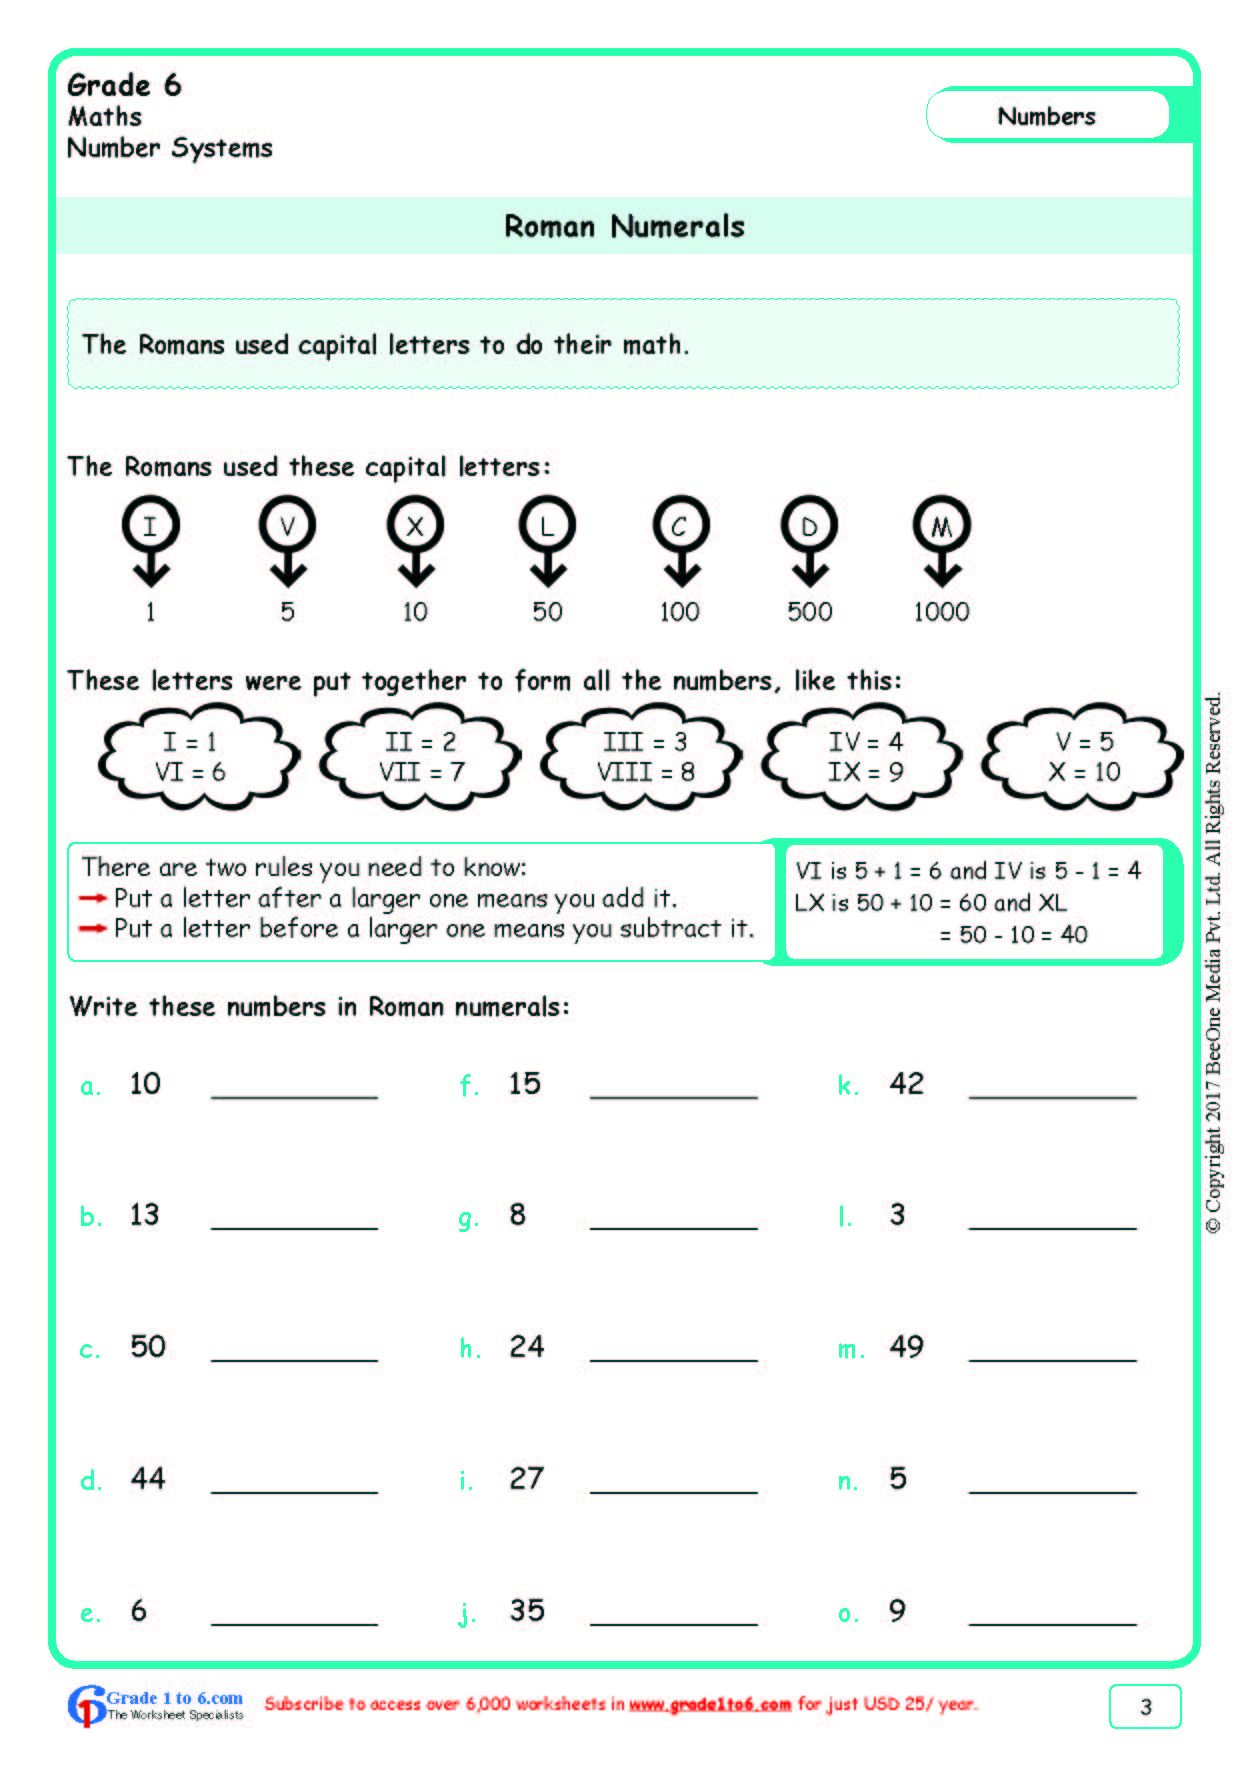 Worksheet Grade 6 Math Roman Numerals In